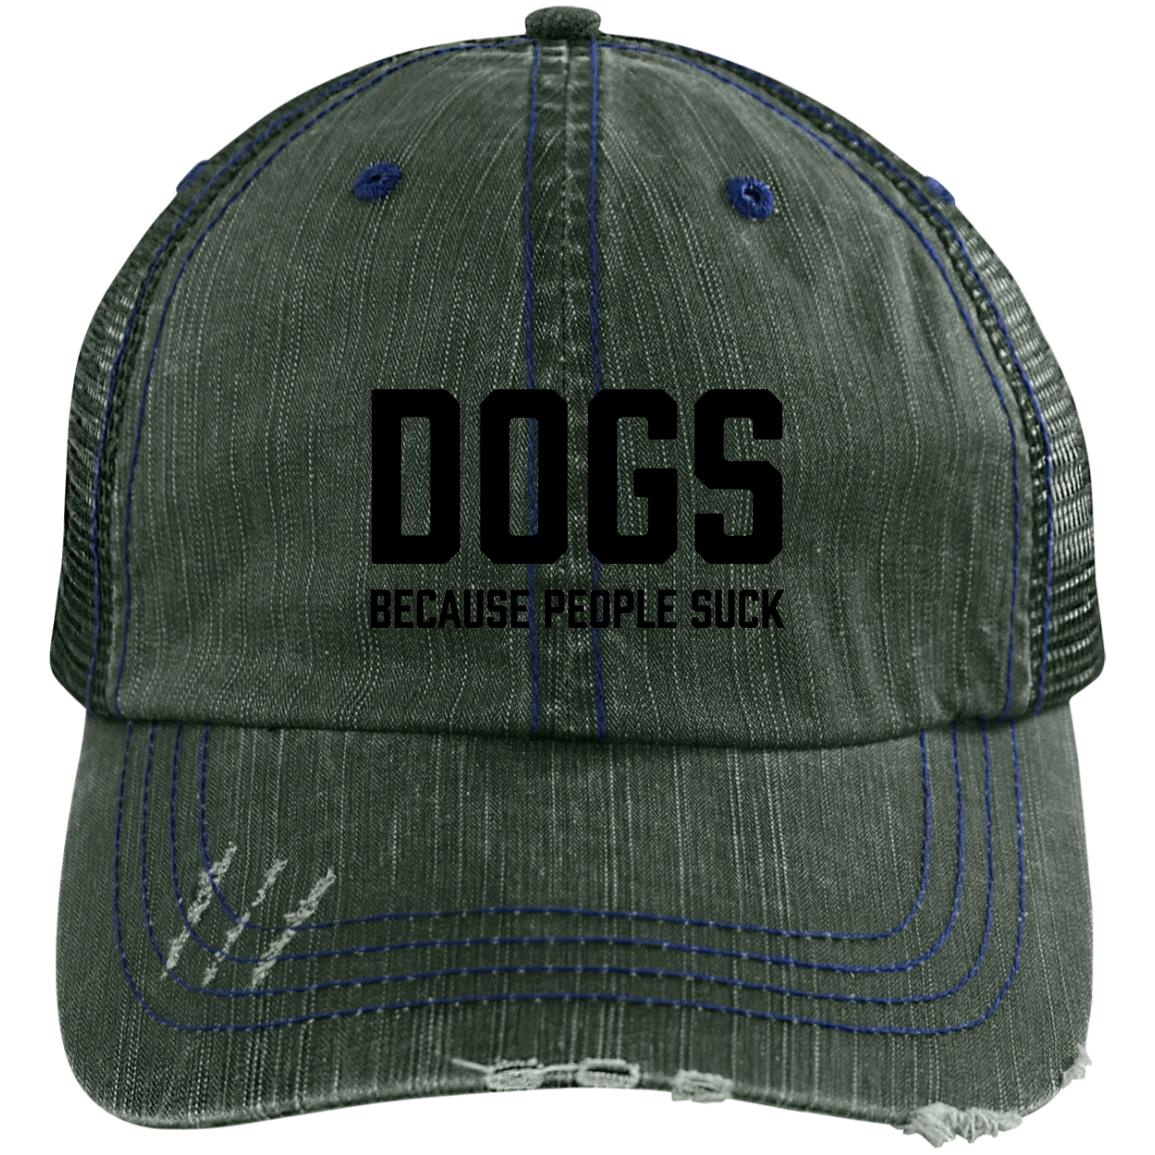 Dogs Because People Suck Embroidered Distressed Trucker Hat be619a3be5e